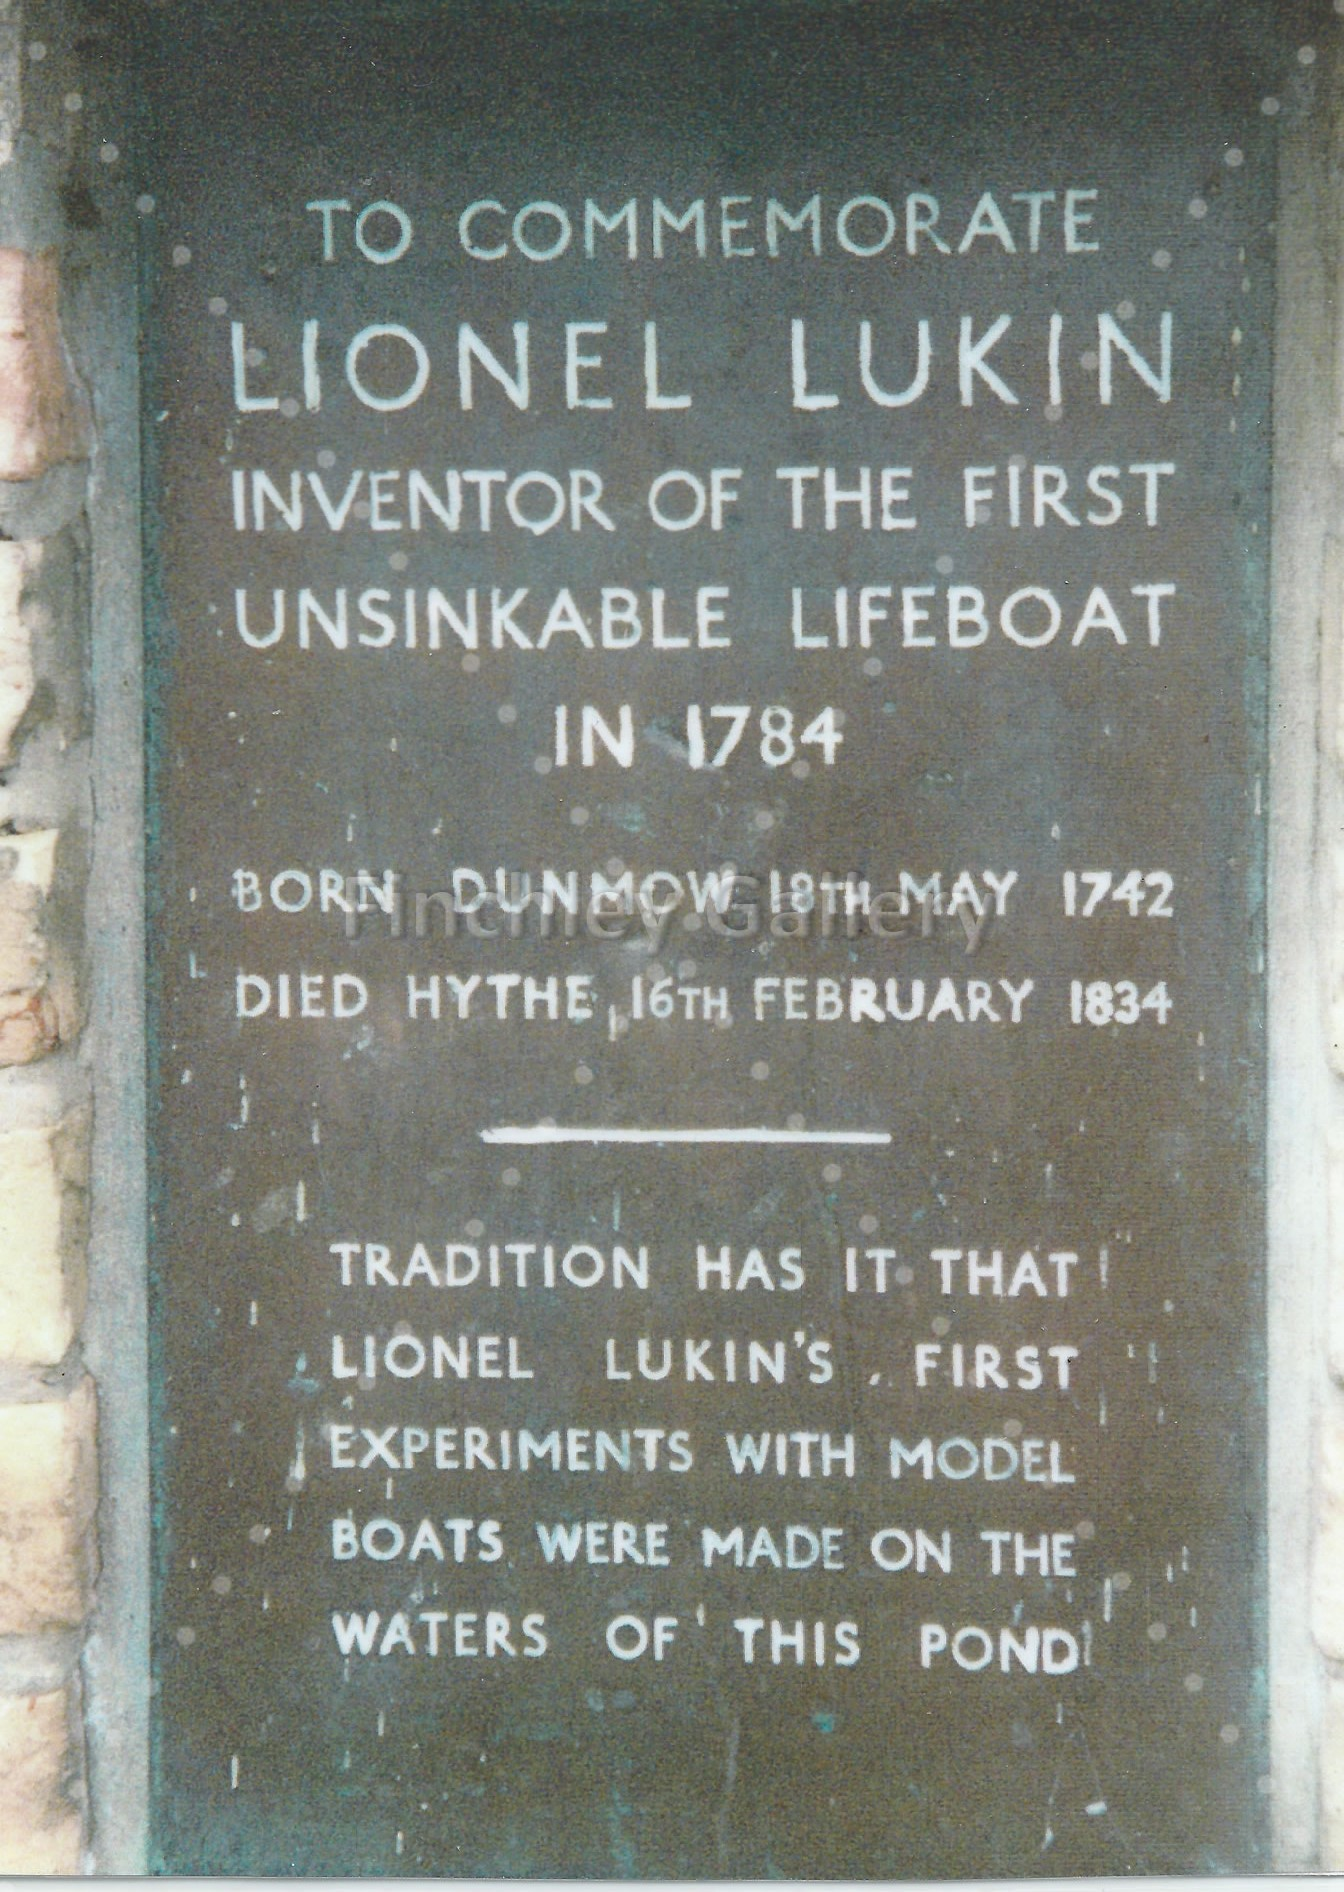 Lionel Lukin sign at the Doctor's Pond Dunmow